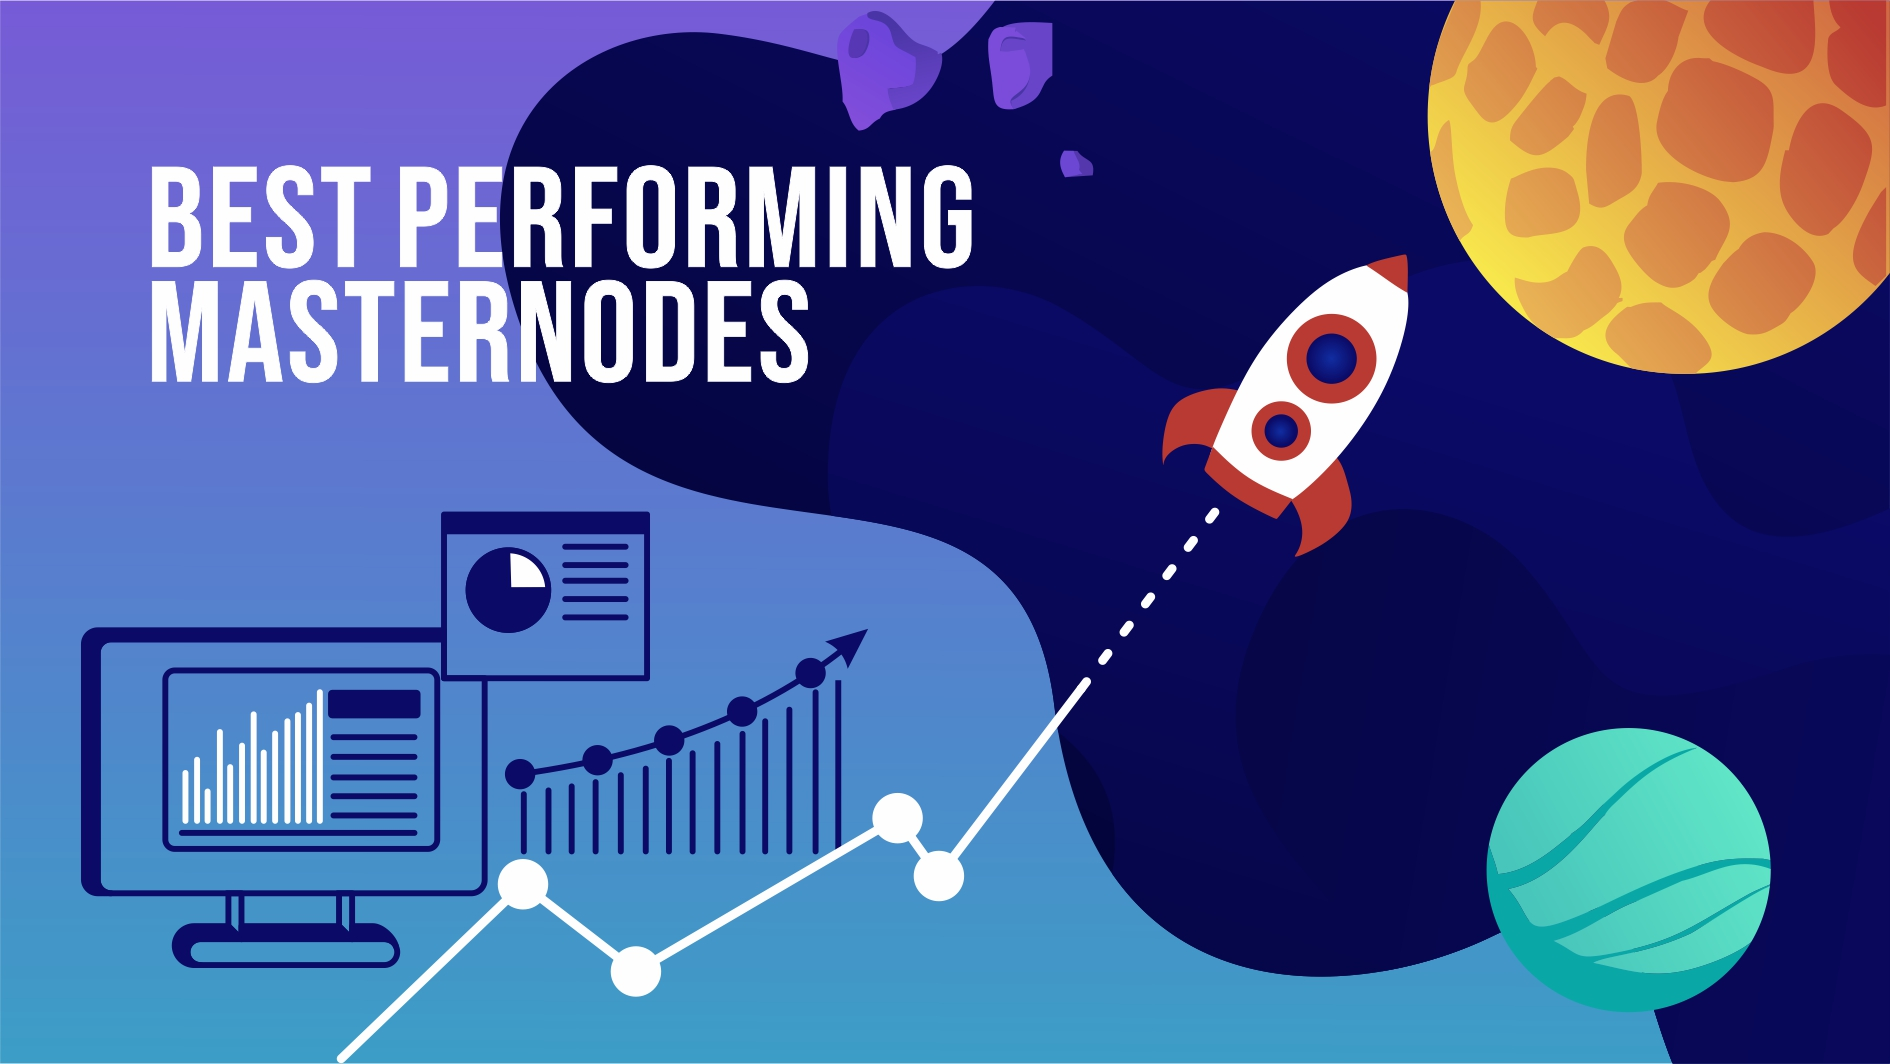 Best Performing Masternodes #December2018